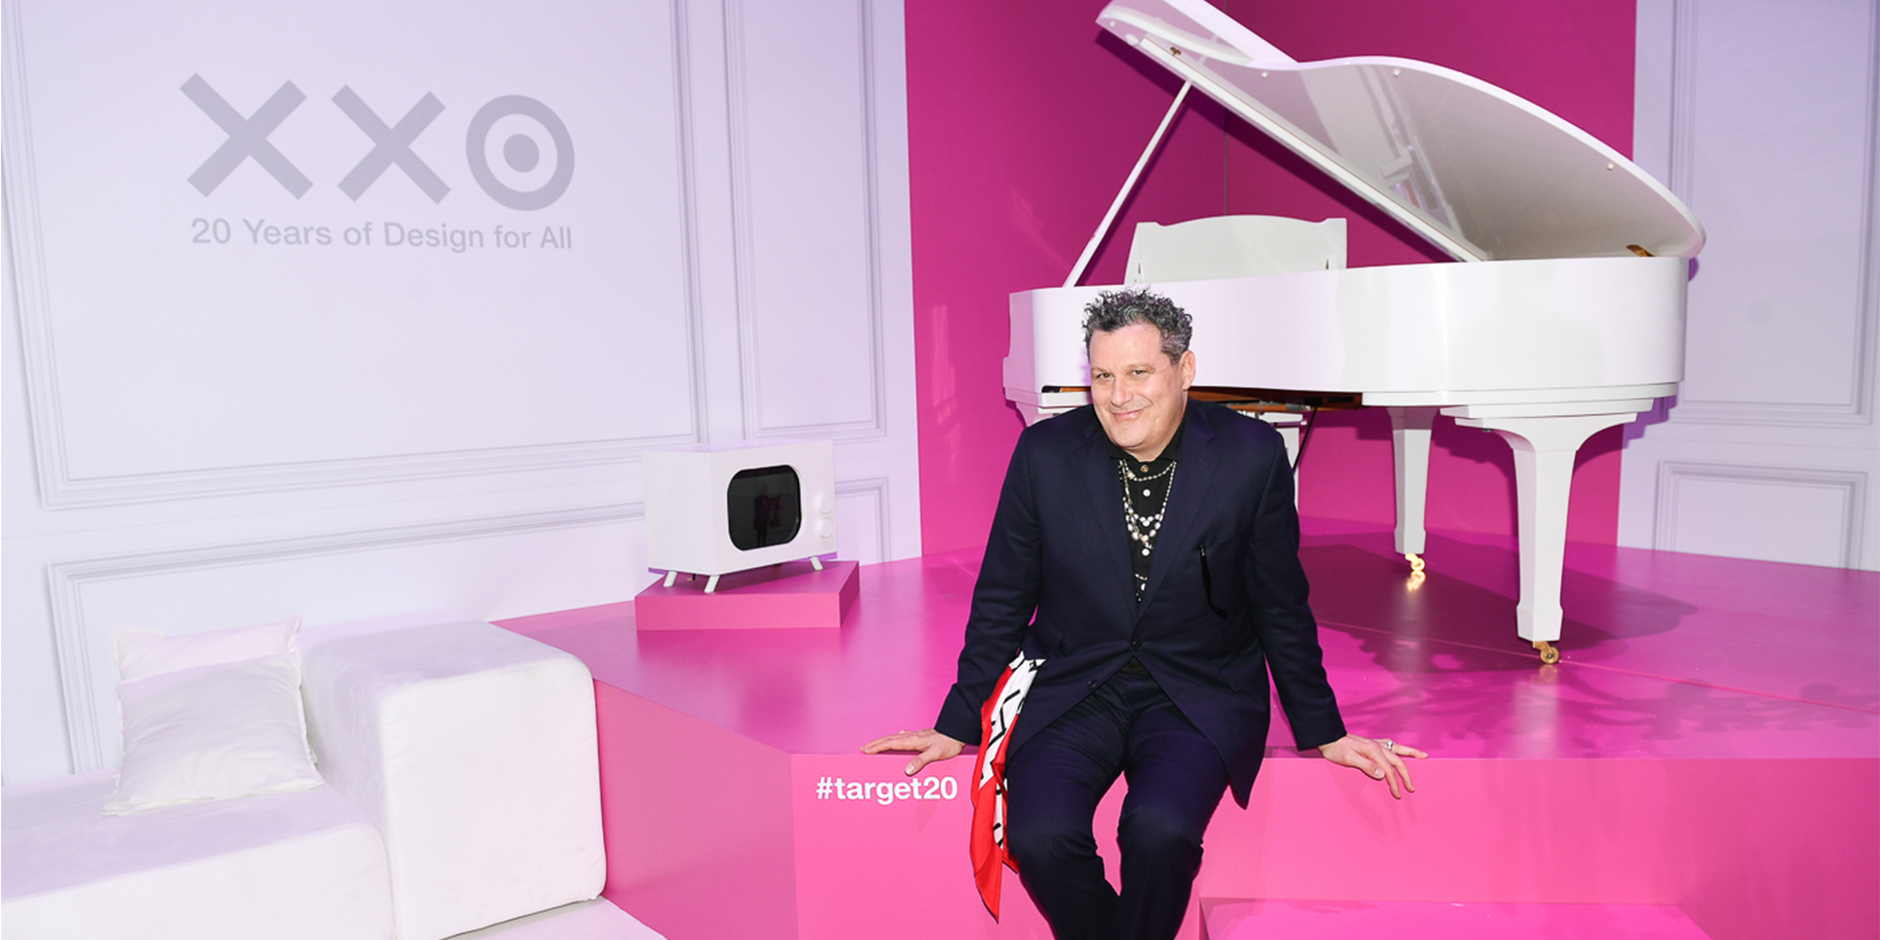 Isaac Mizrahi sits on a pink and white stage in front of a white piano